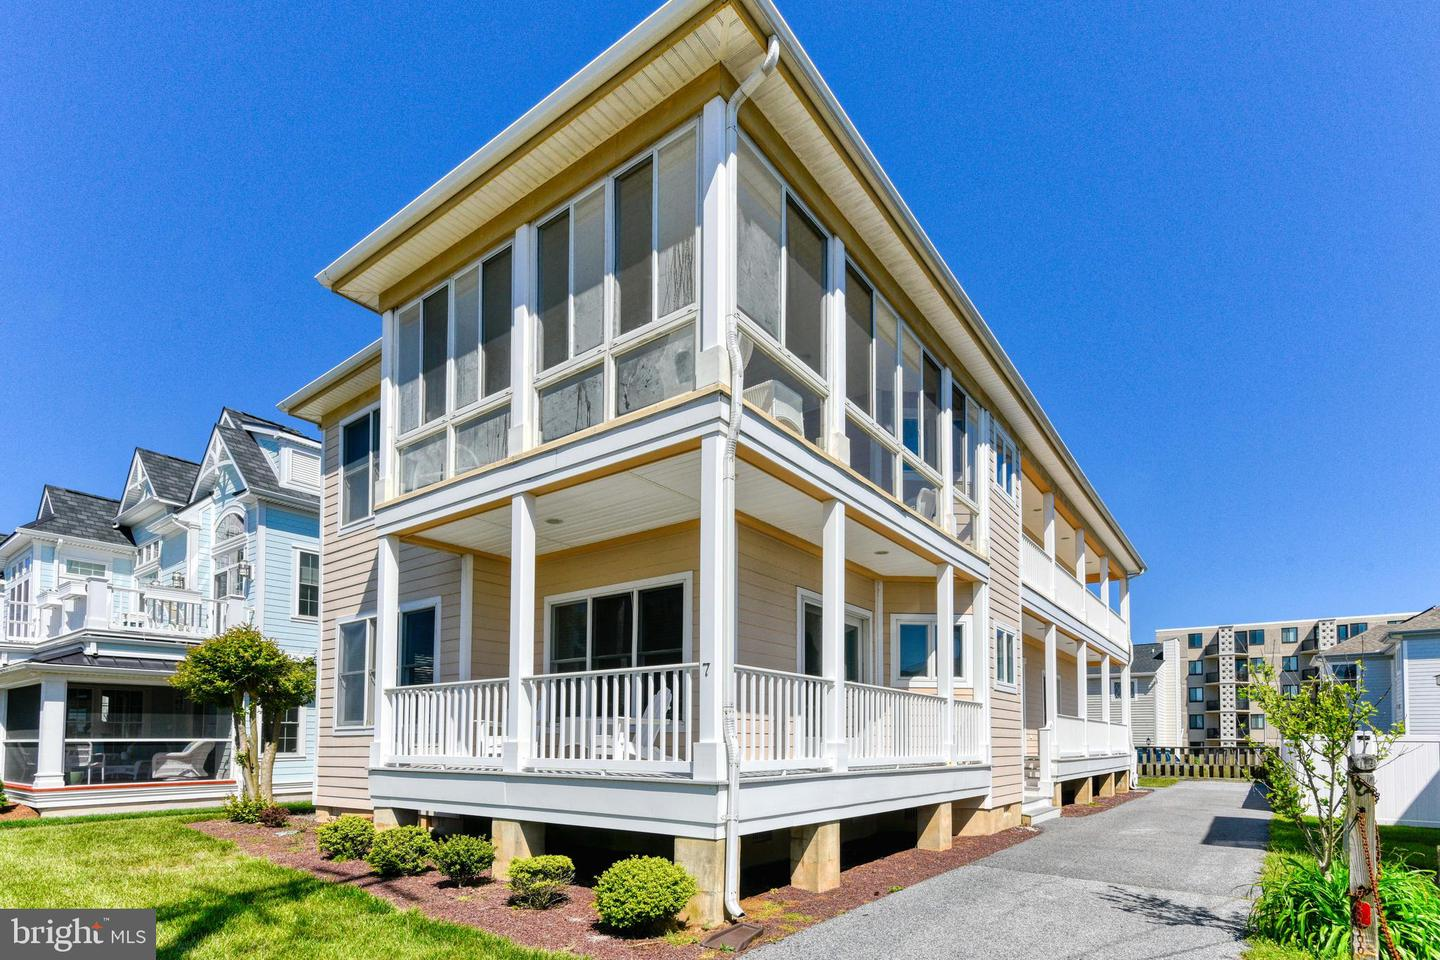 DESU140752-301729565986-2019-05-20-15-11-27 7 Olive Ave | Rehoboth Beach, DE Real Estate For Sale | MLS# Desu140752  - 1st Choice Properties